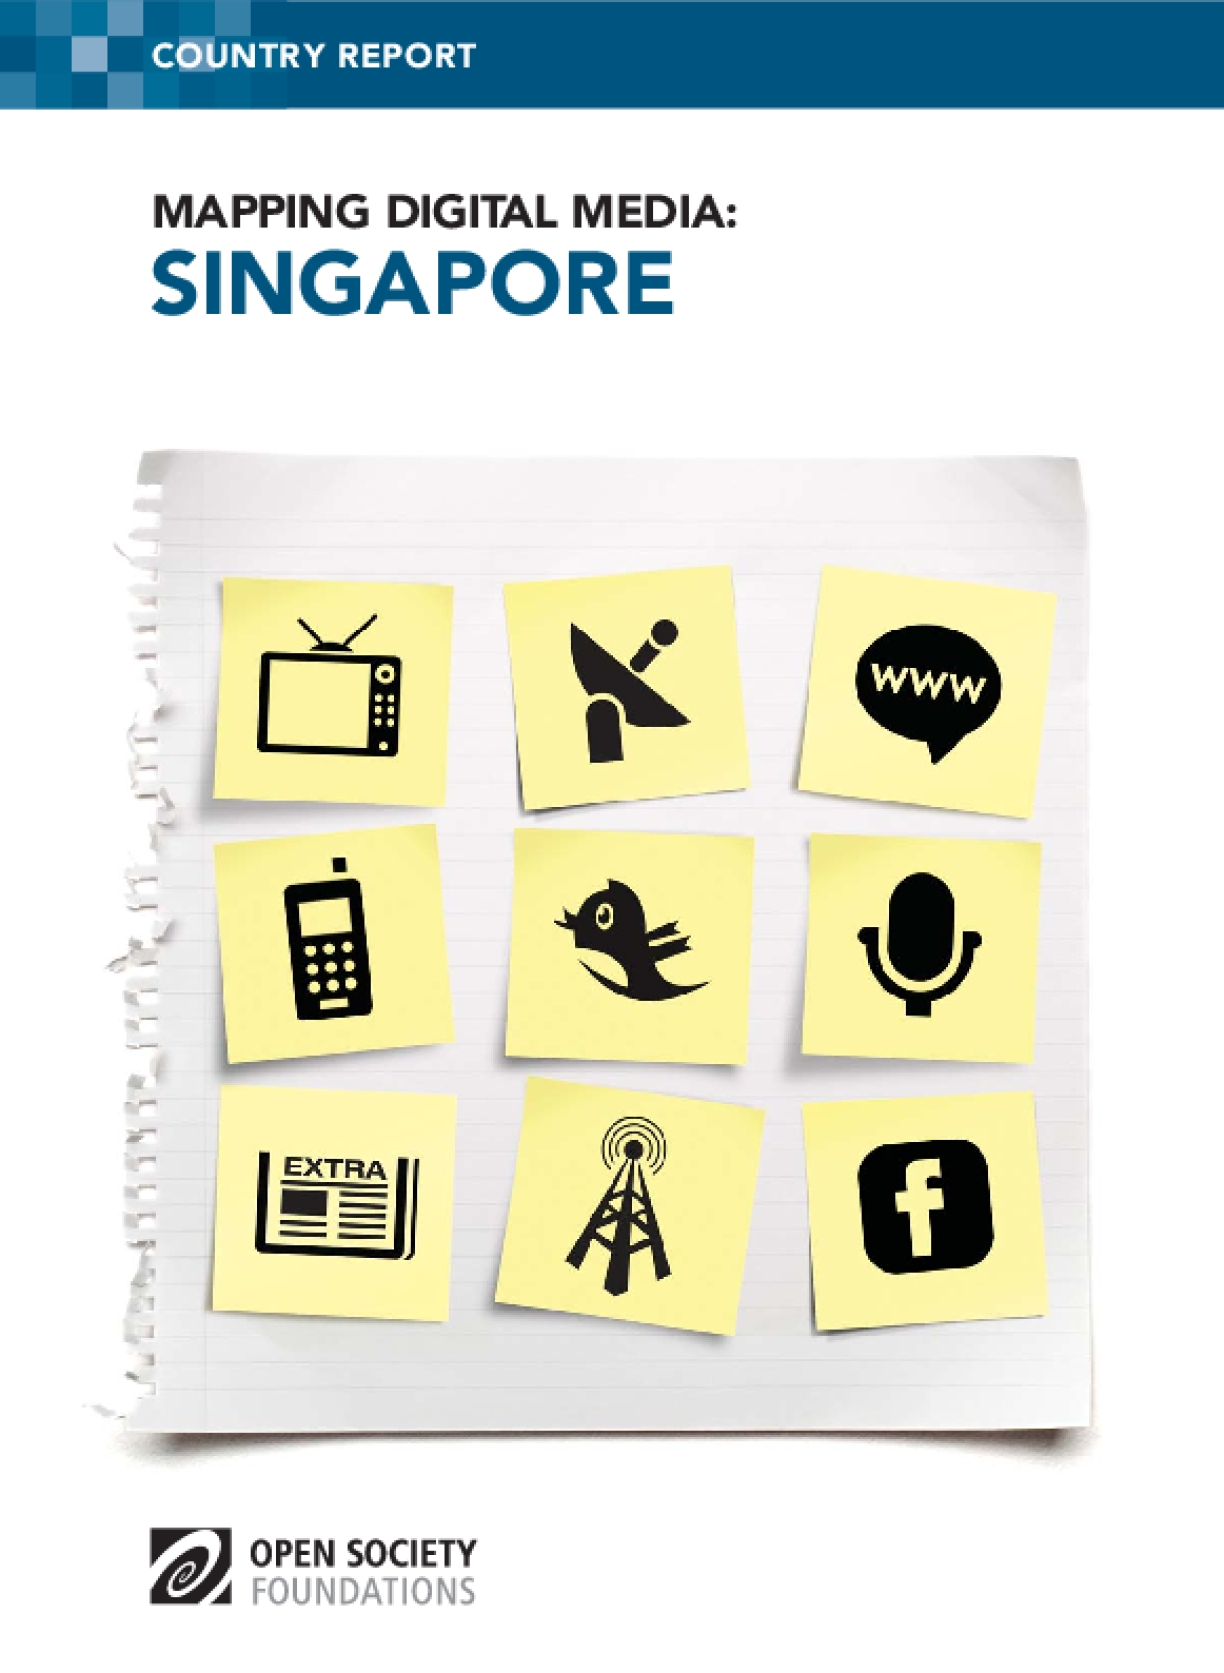 Mapping Digital Media: Singapore